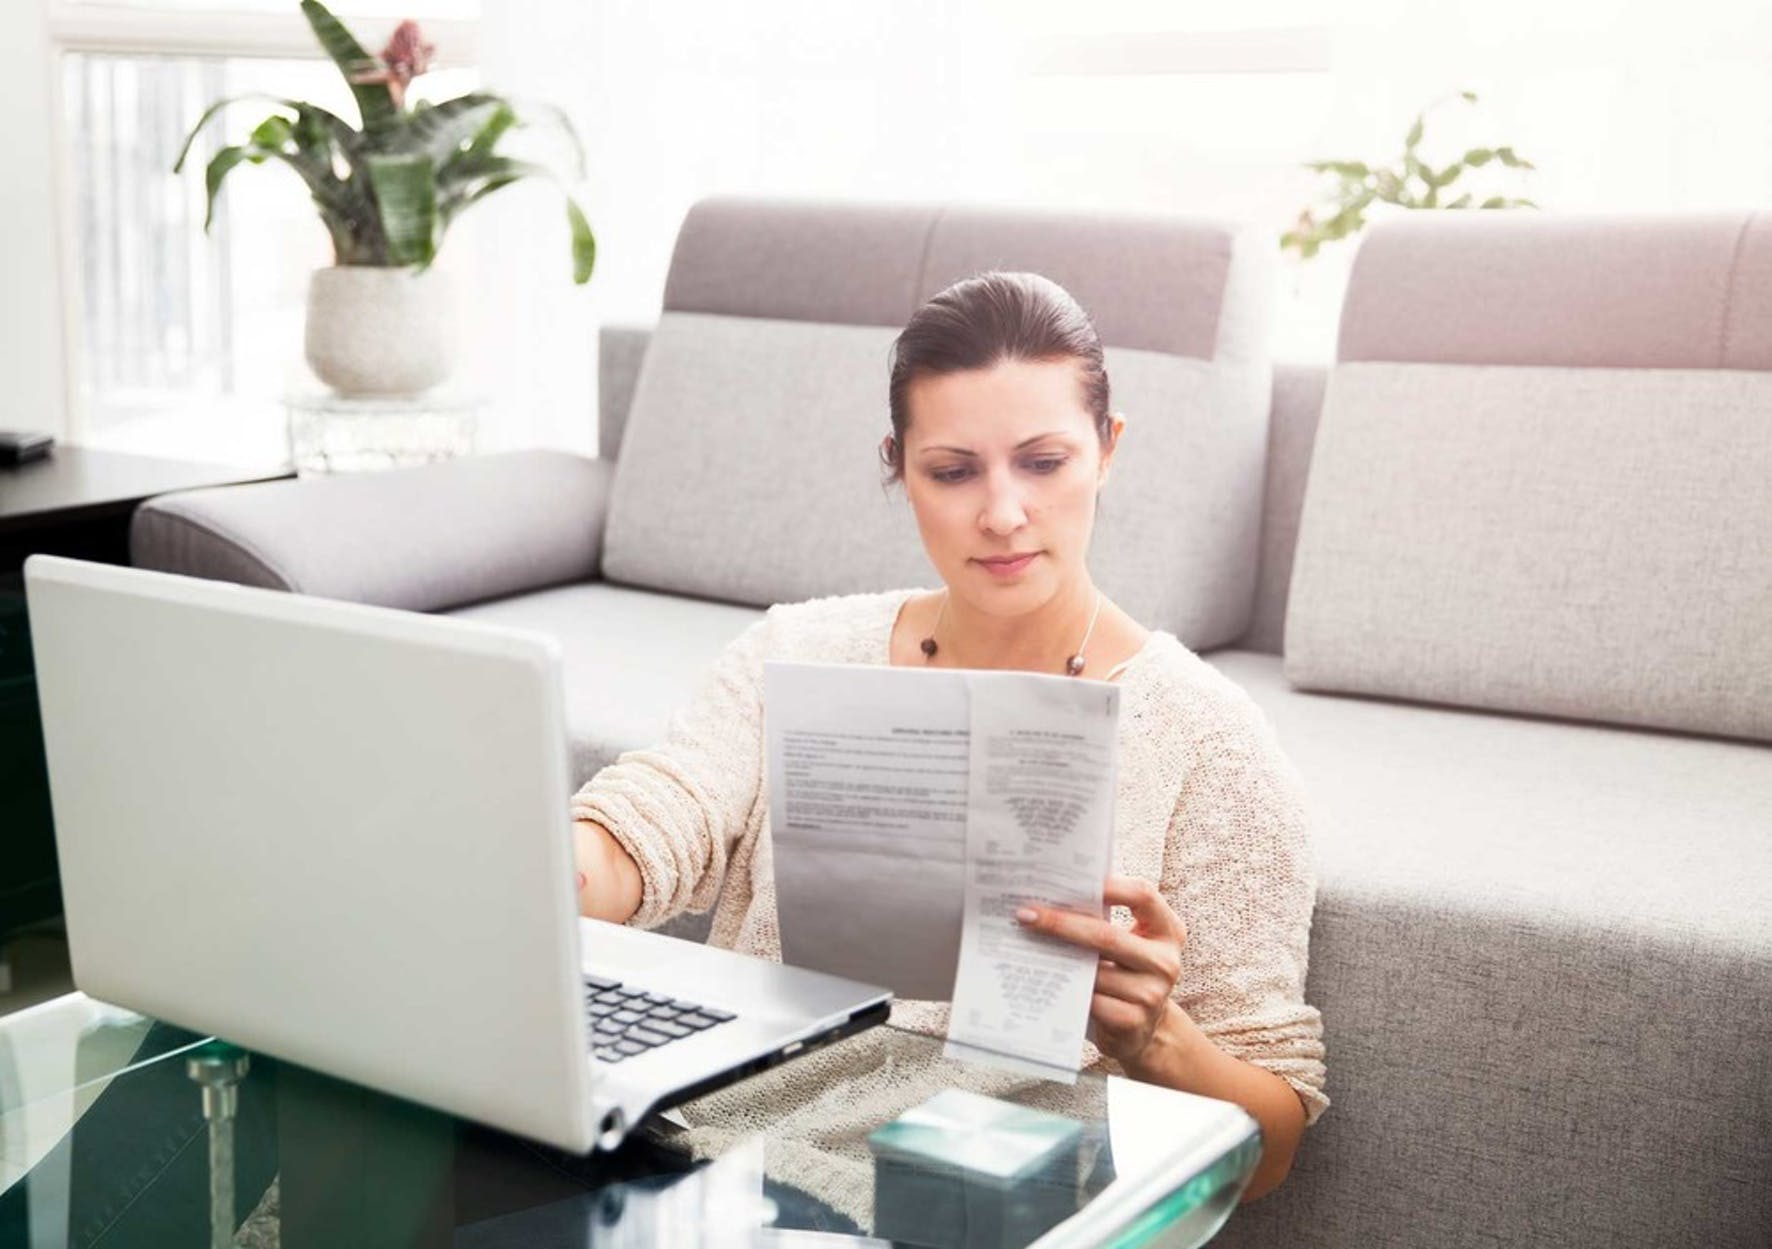 Small business owner filing her tax return on her own from home